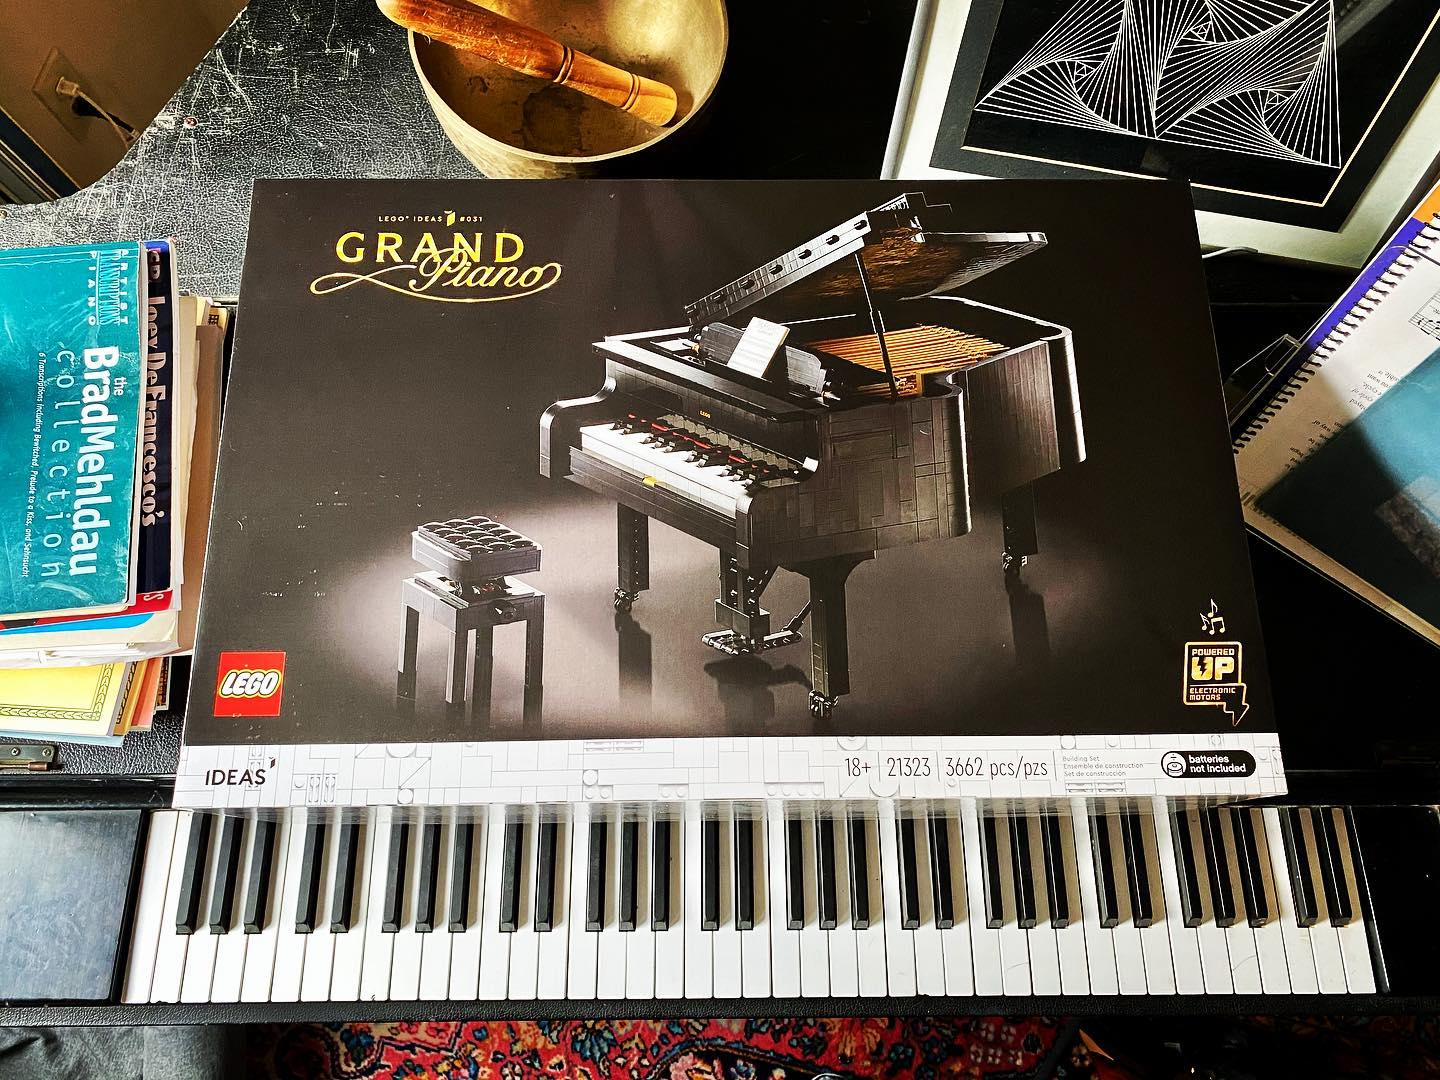 This should keep the family busy.  #legograndpiano #legogram